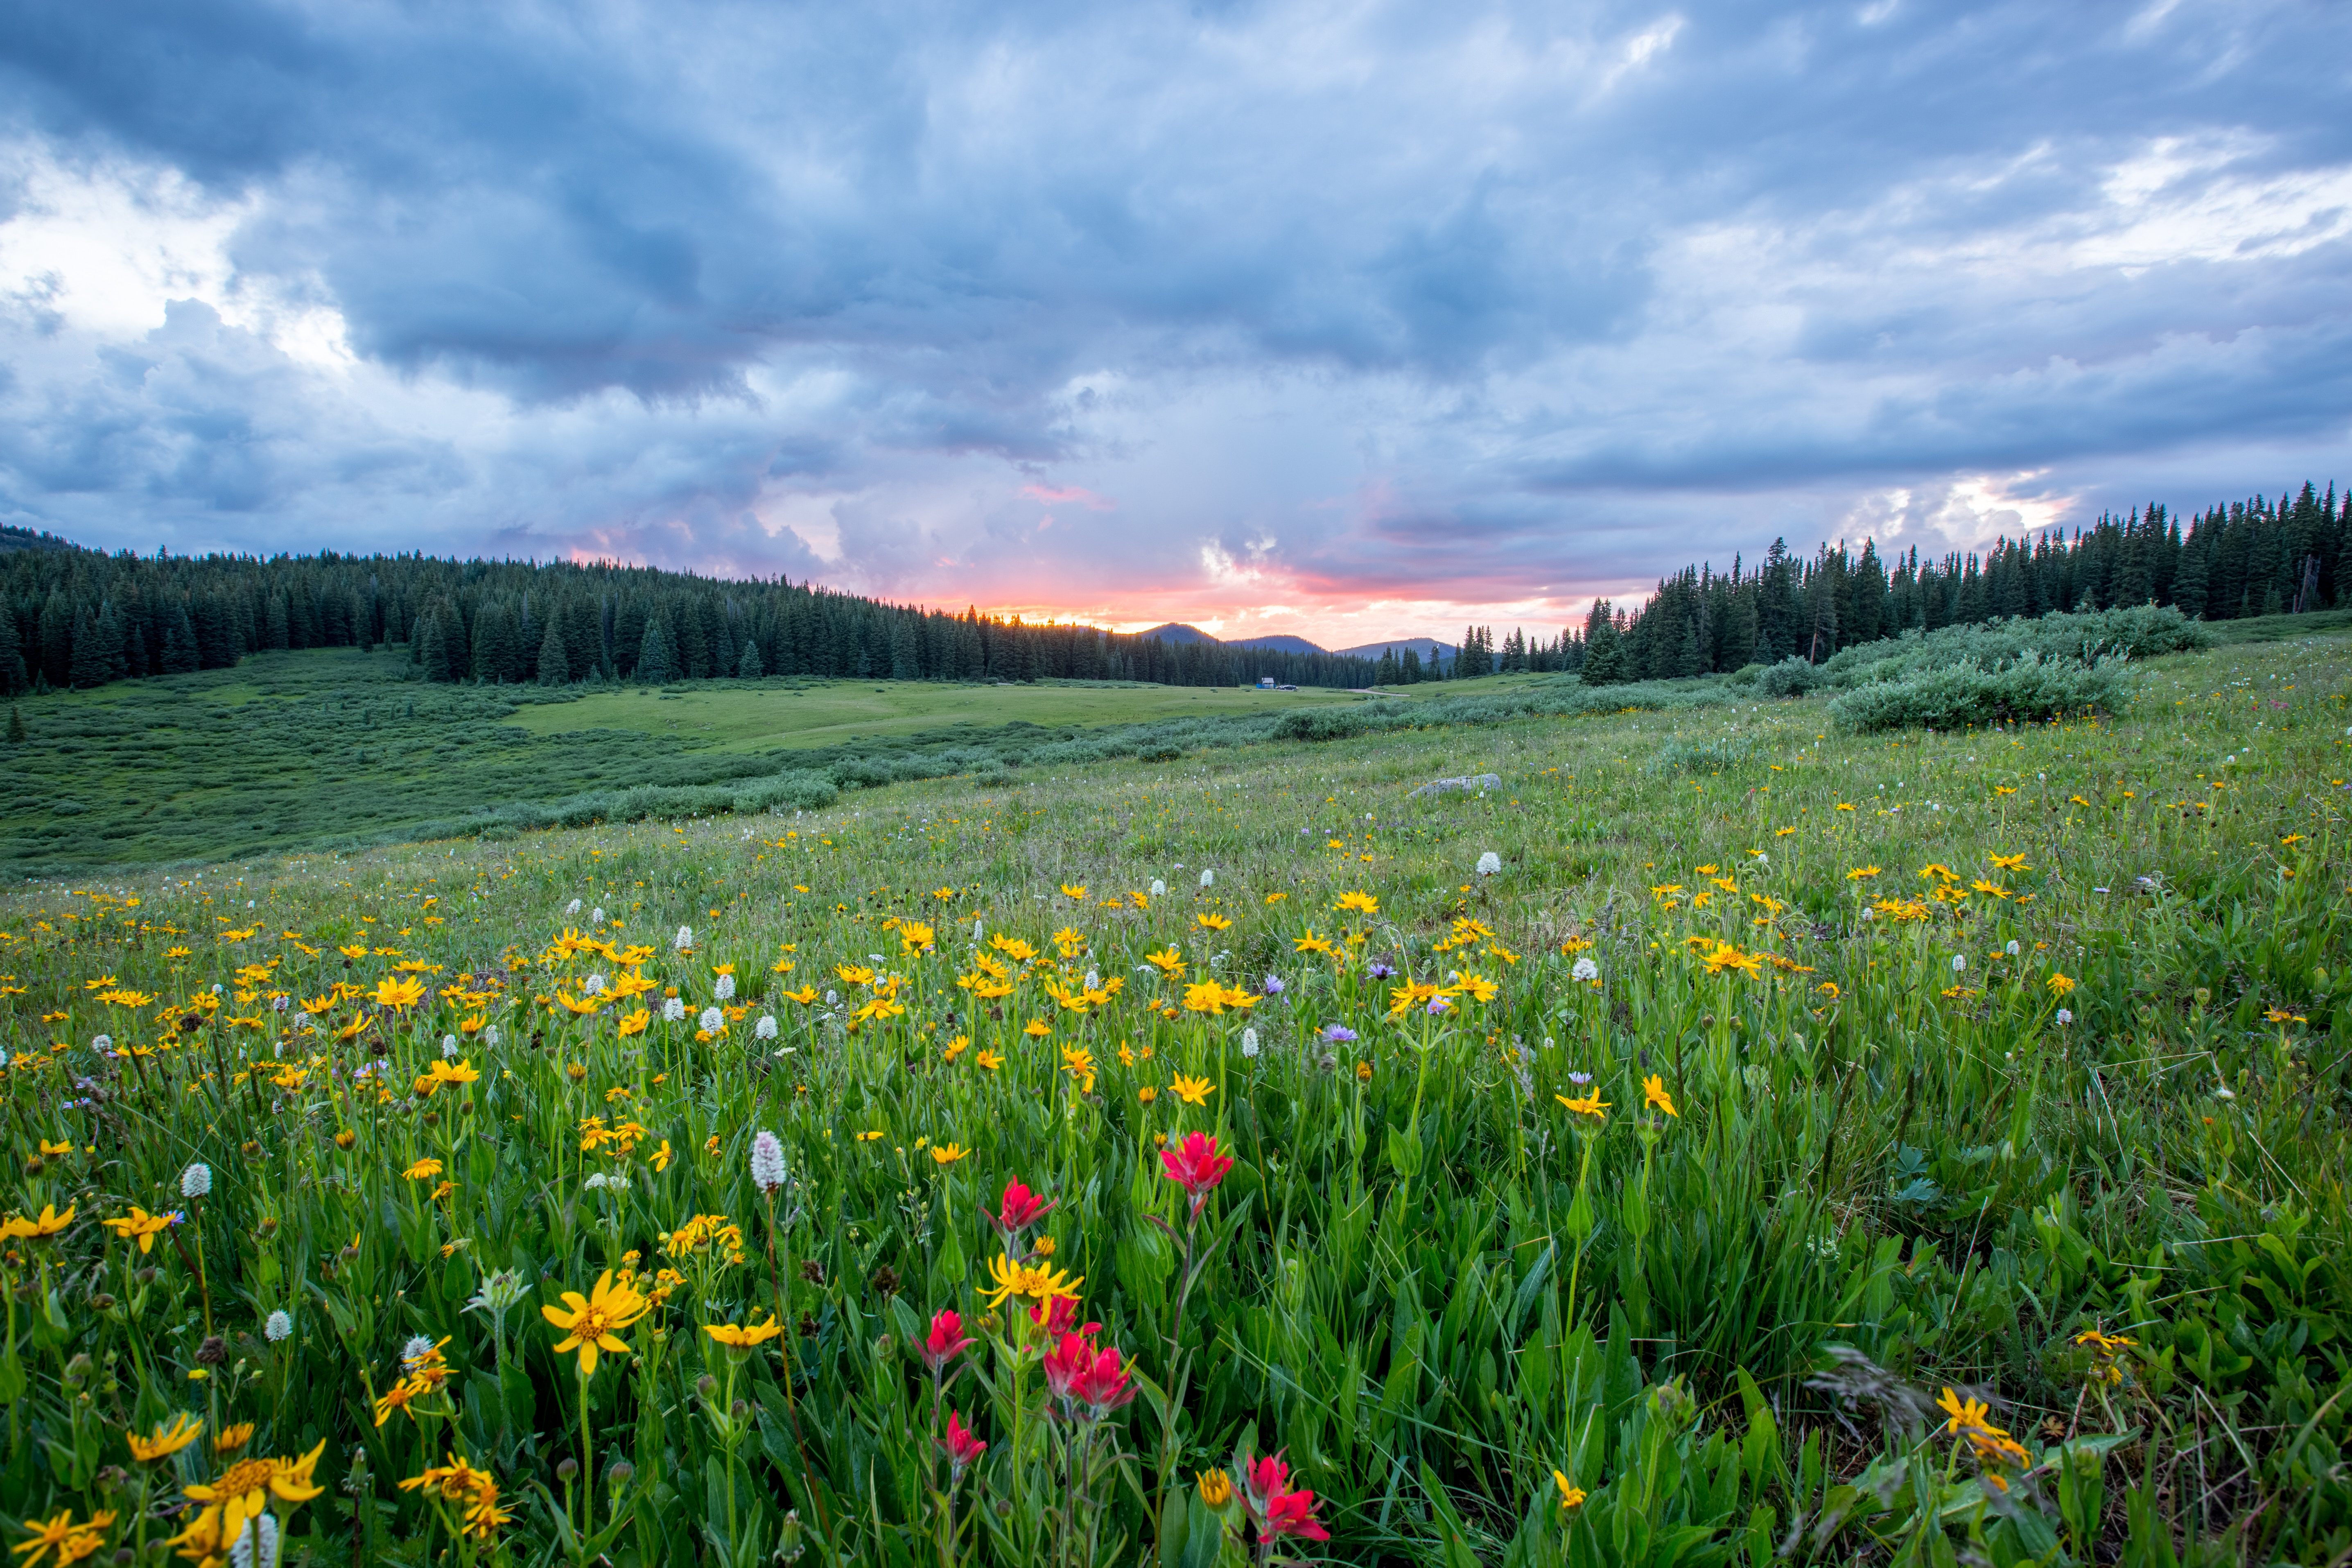 Flowers in field with pine trees and sunset in distance